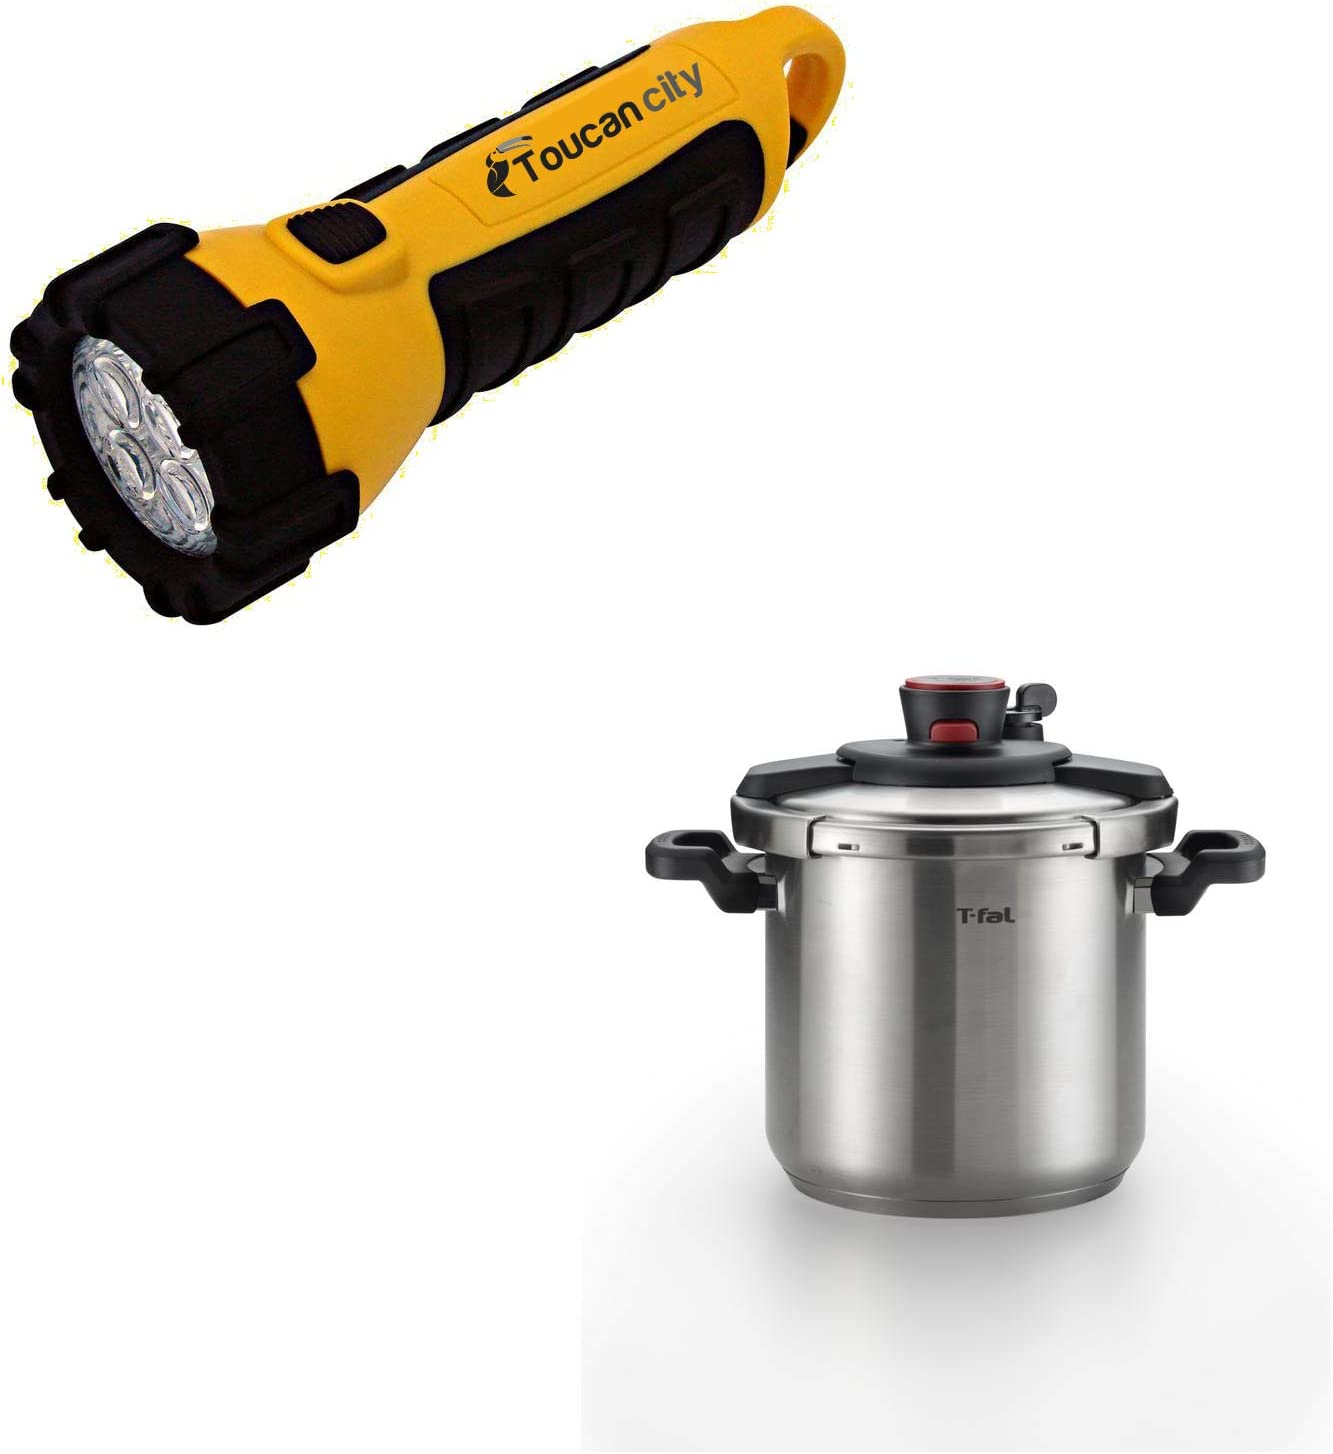 Toucan City LED Flashlight and T-fal 8 qt. Stainless Steel Stove Top Pressure Cooker with Steam Basket P4500936